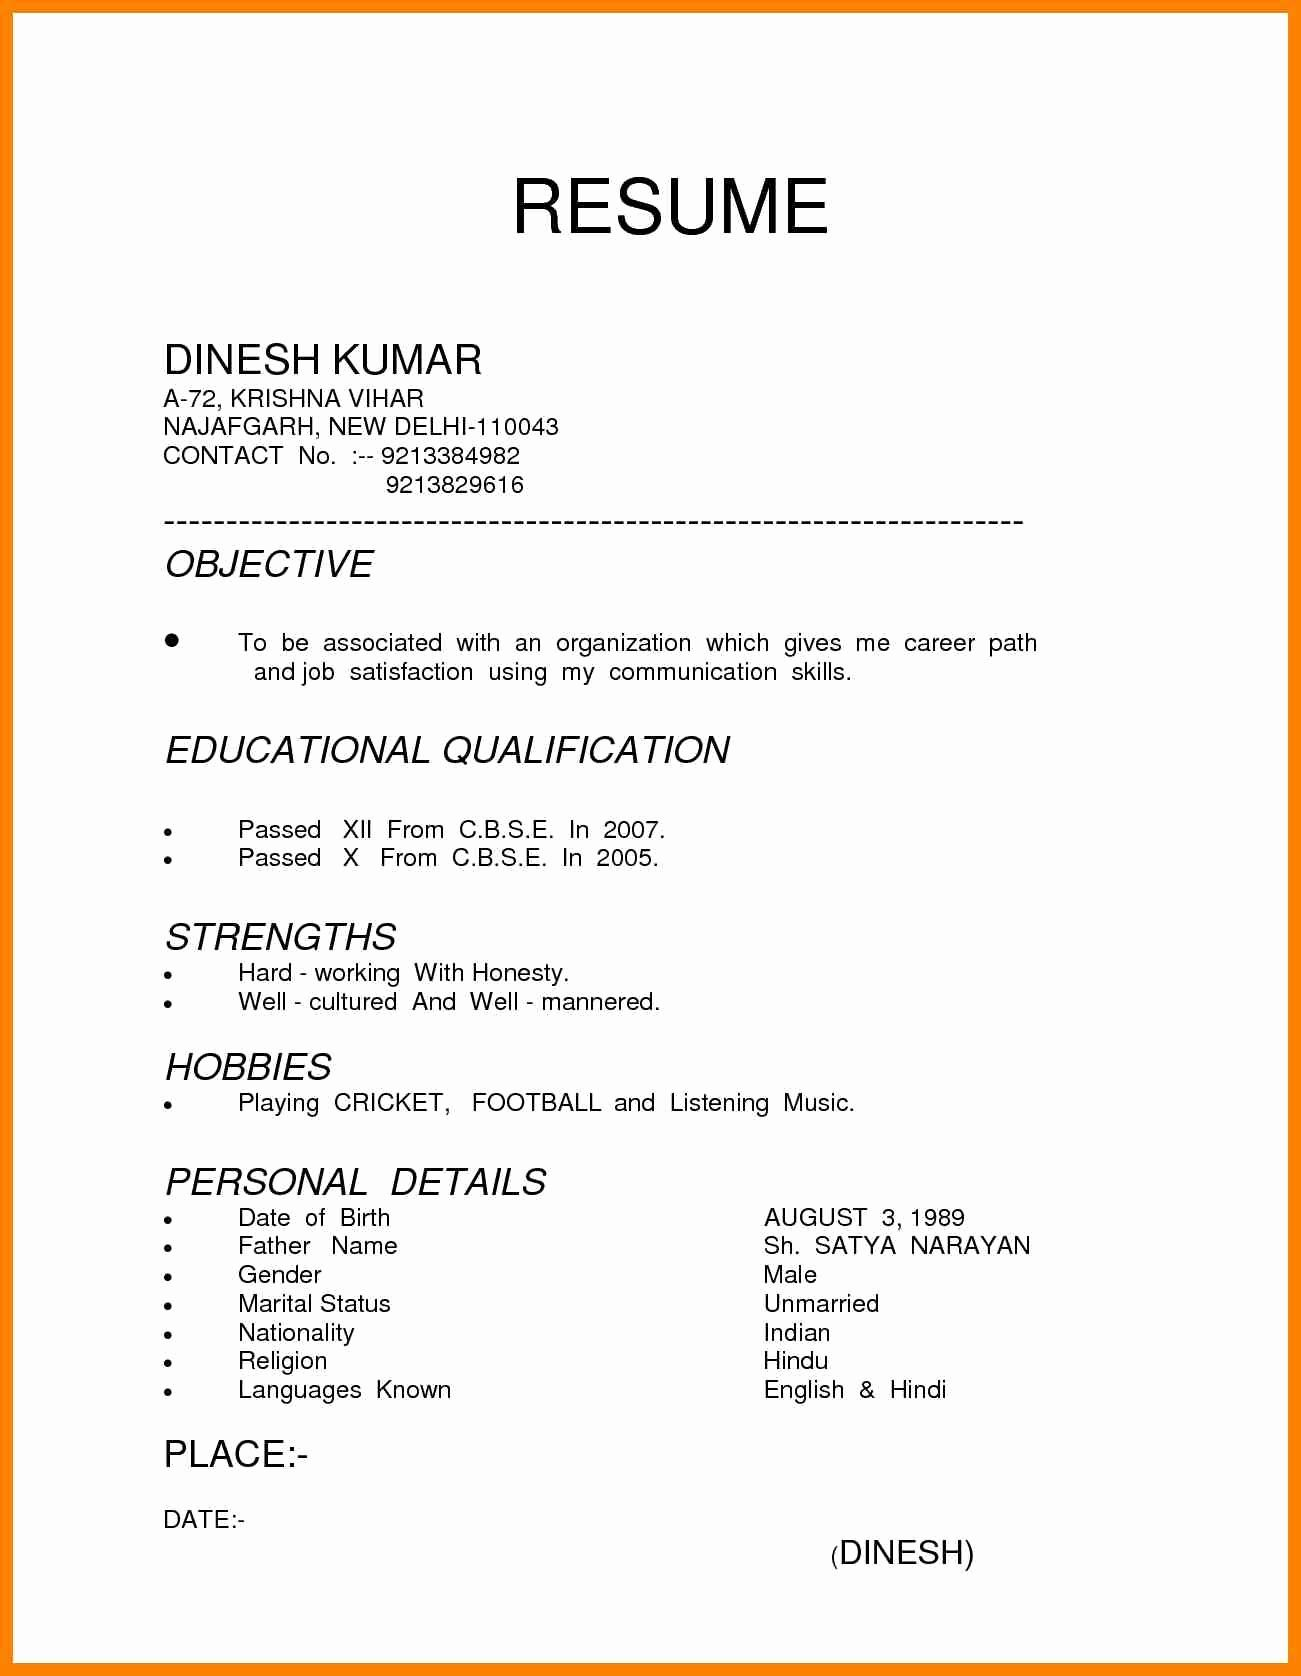 Image result for resume hindi format picture Resume